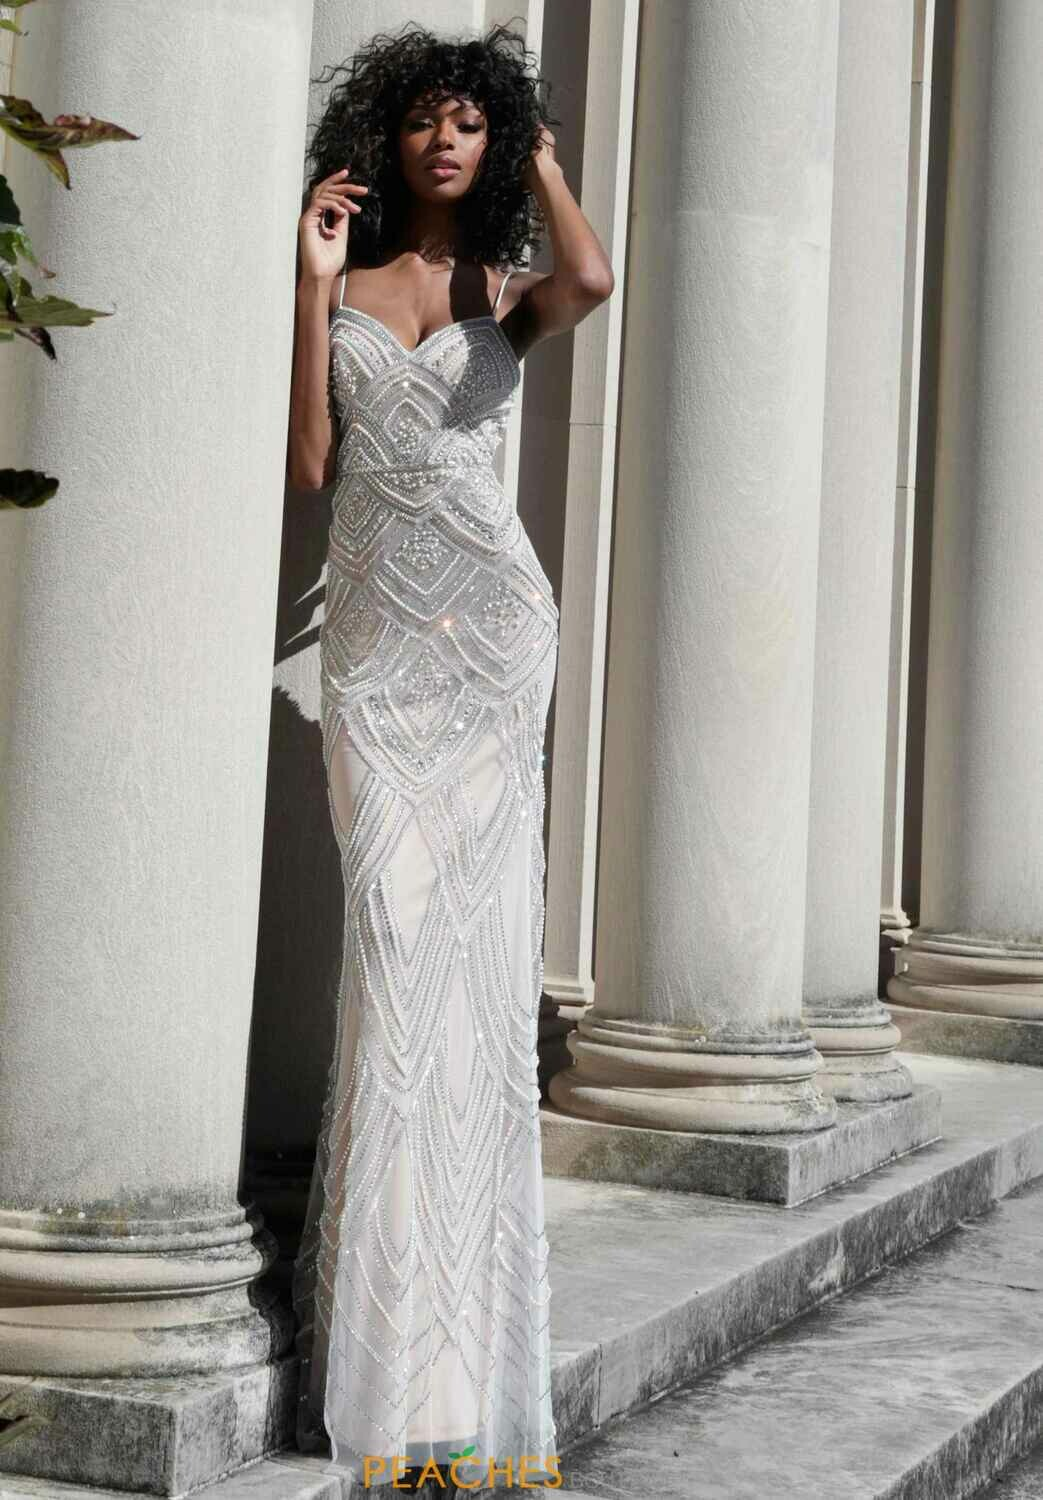 Jovani Beaded Gown With a Sweetheart Neckline in Nude